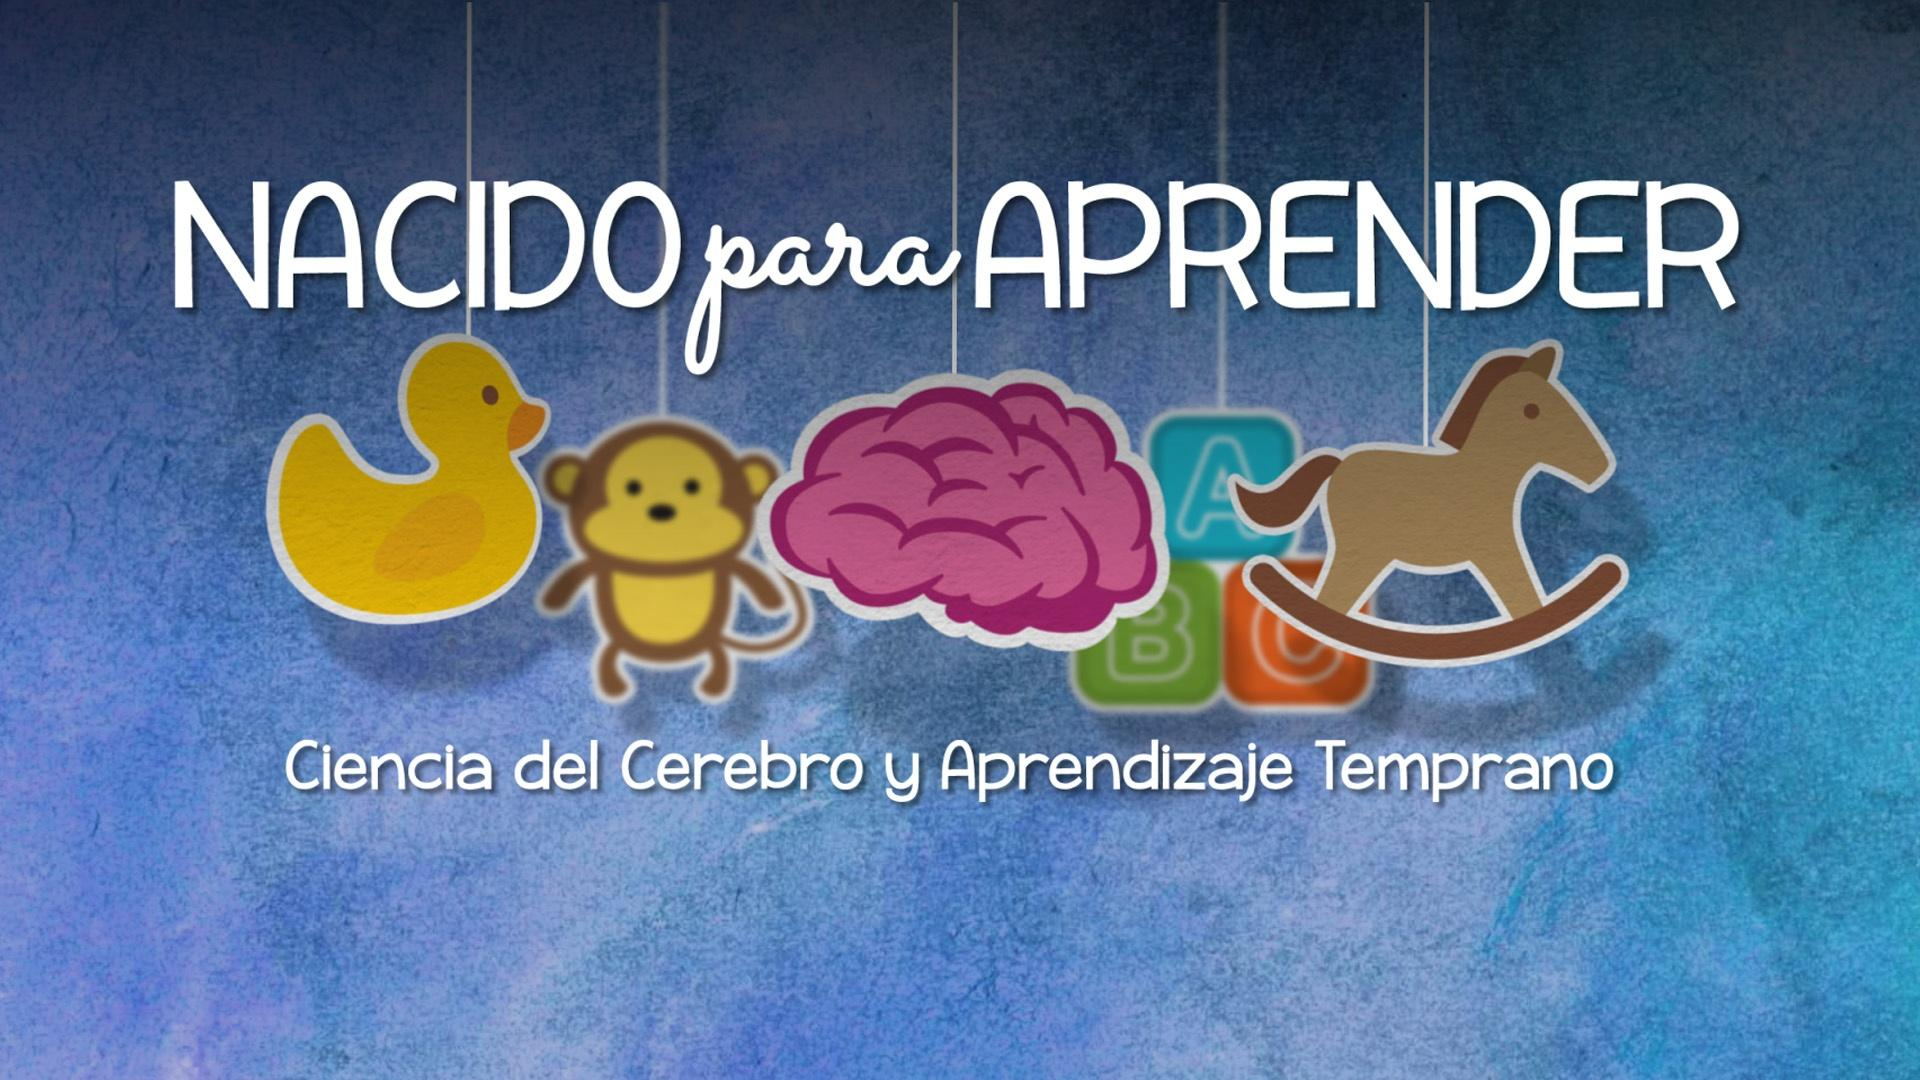 Nacido para Aprender (Born to Learn Spanish language)